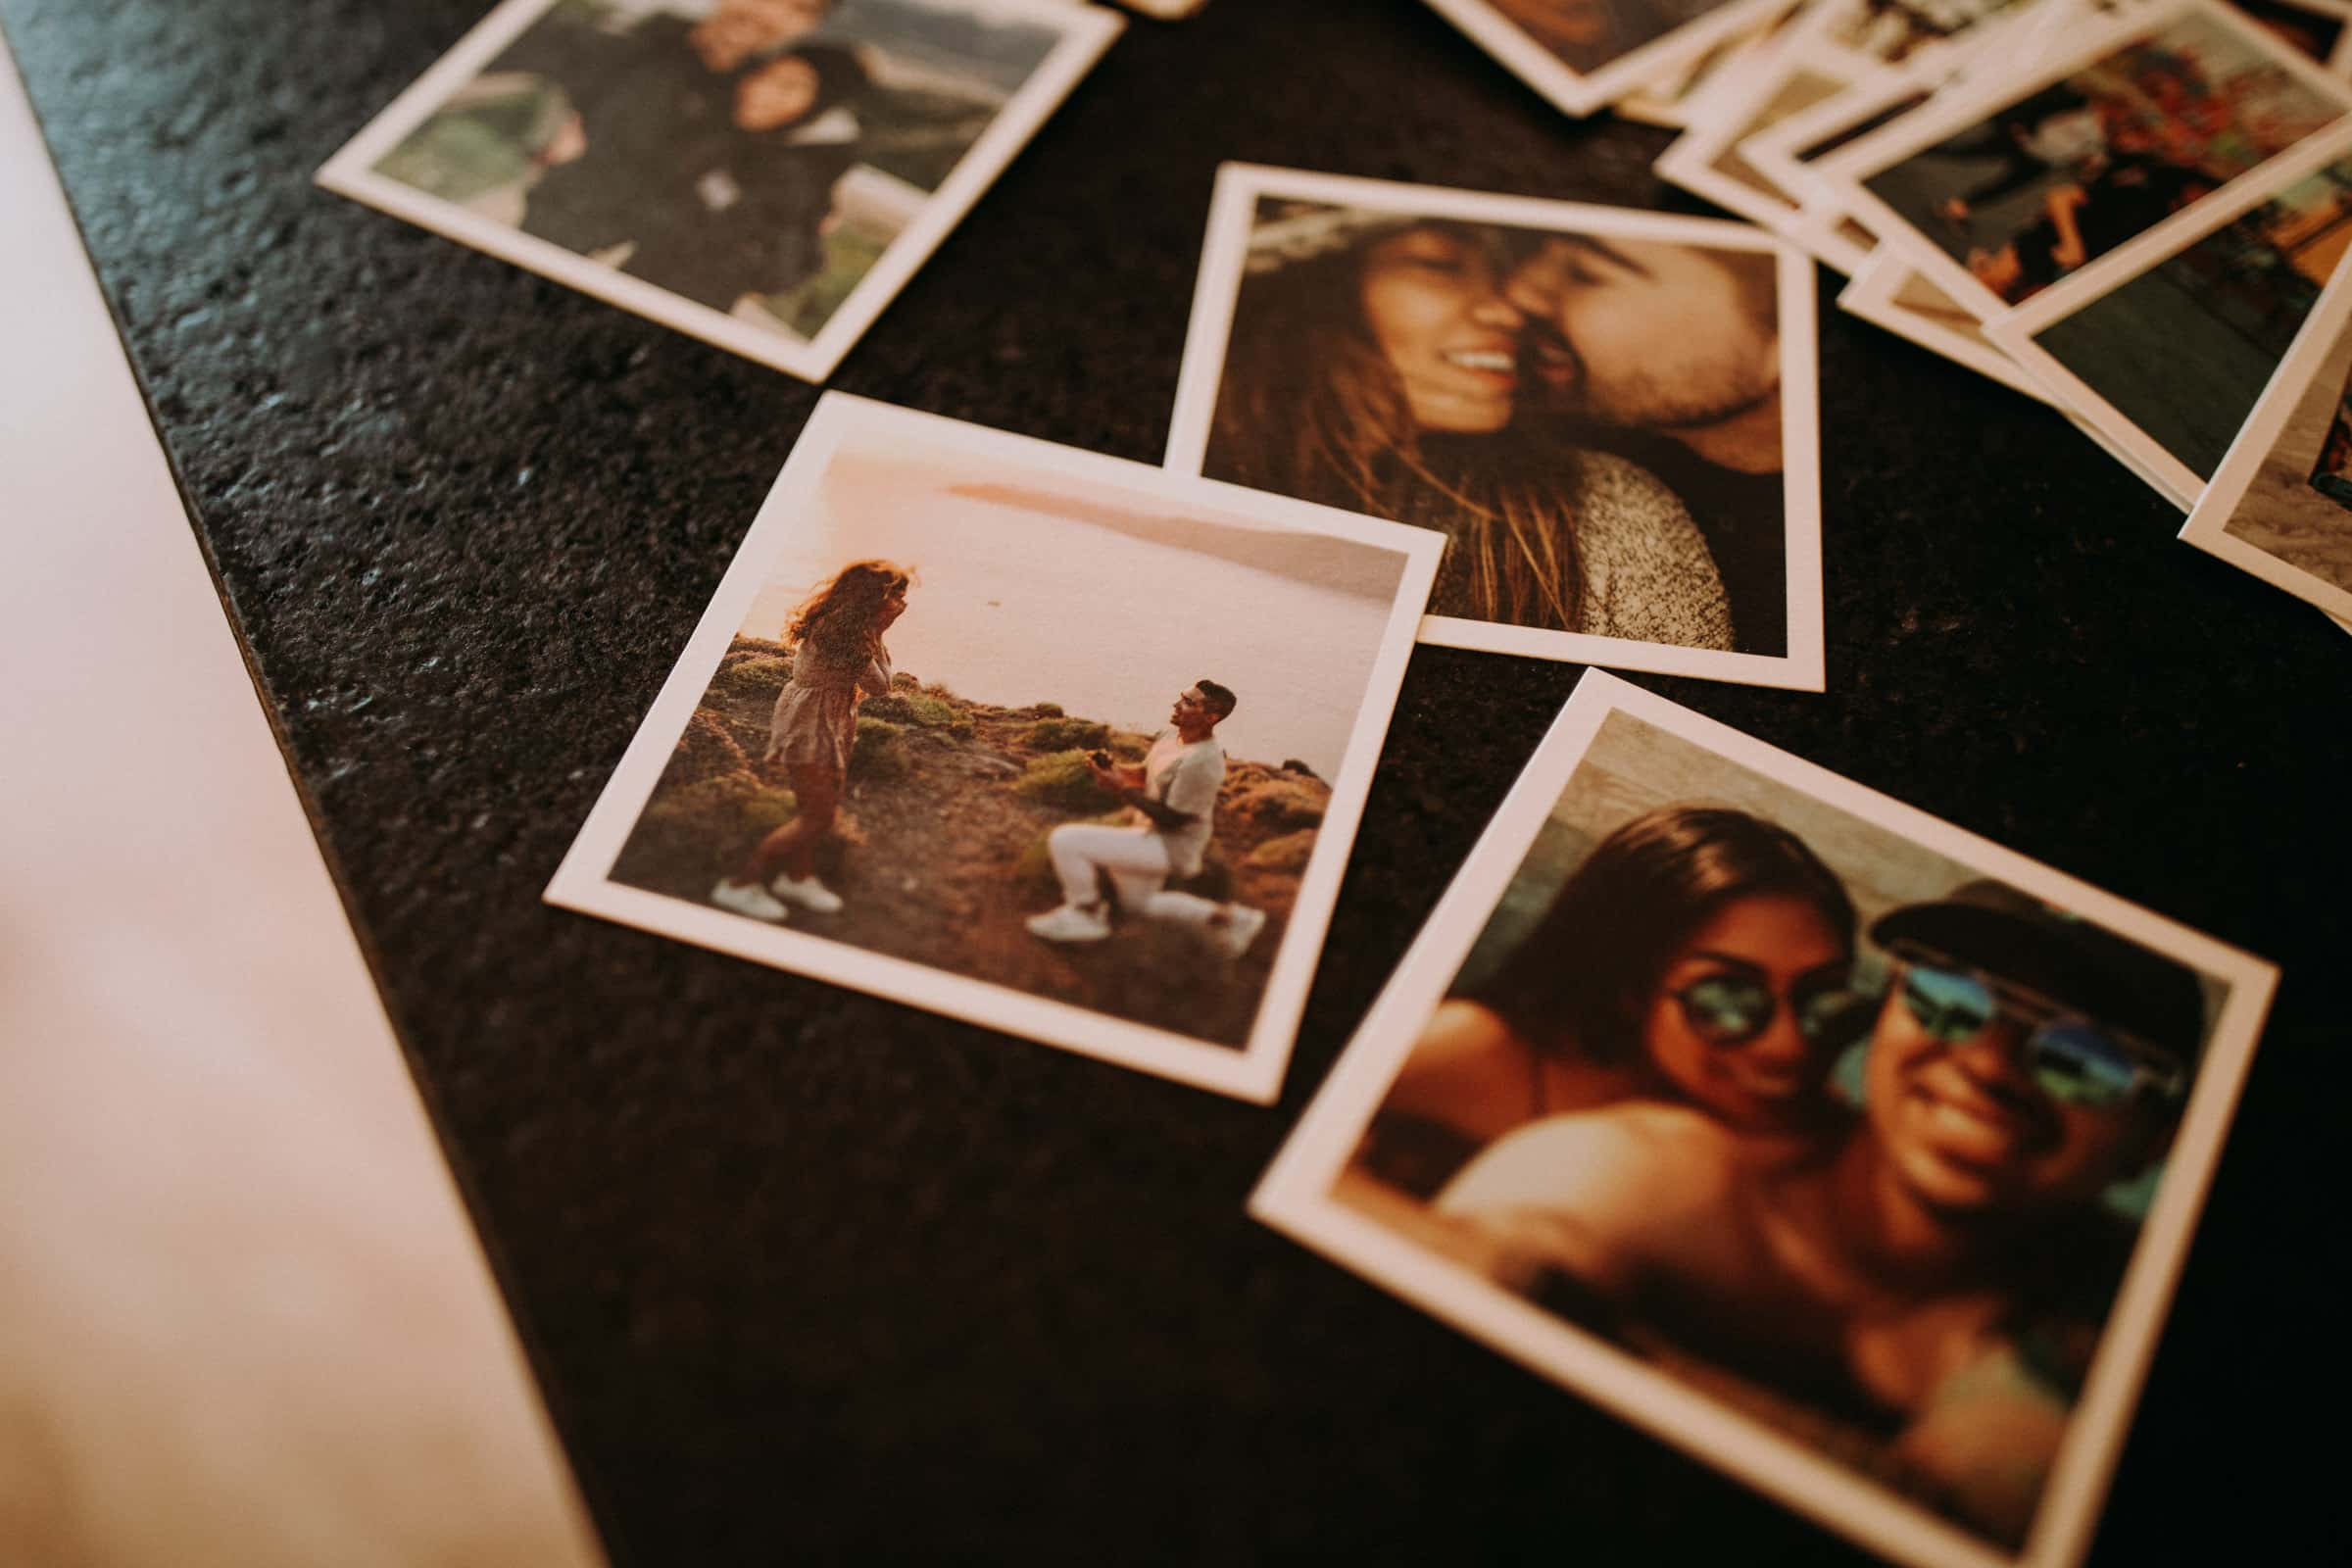 Engagement photos are spread out on a table.